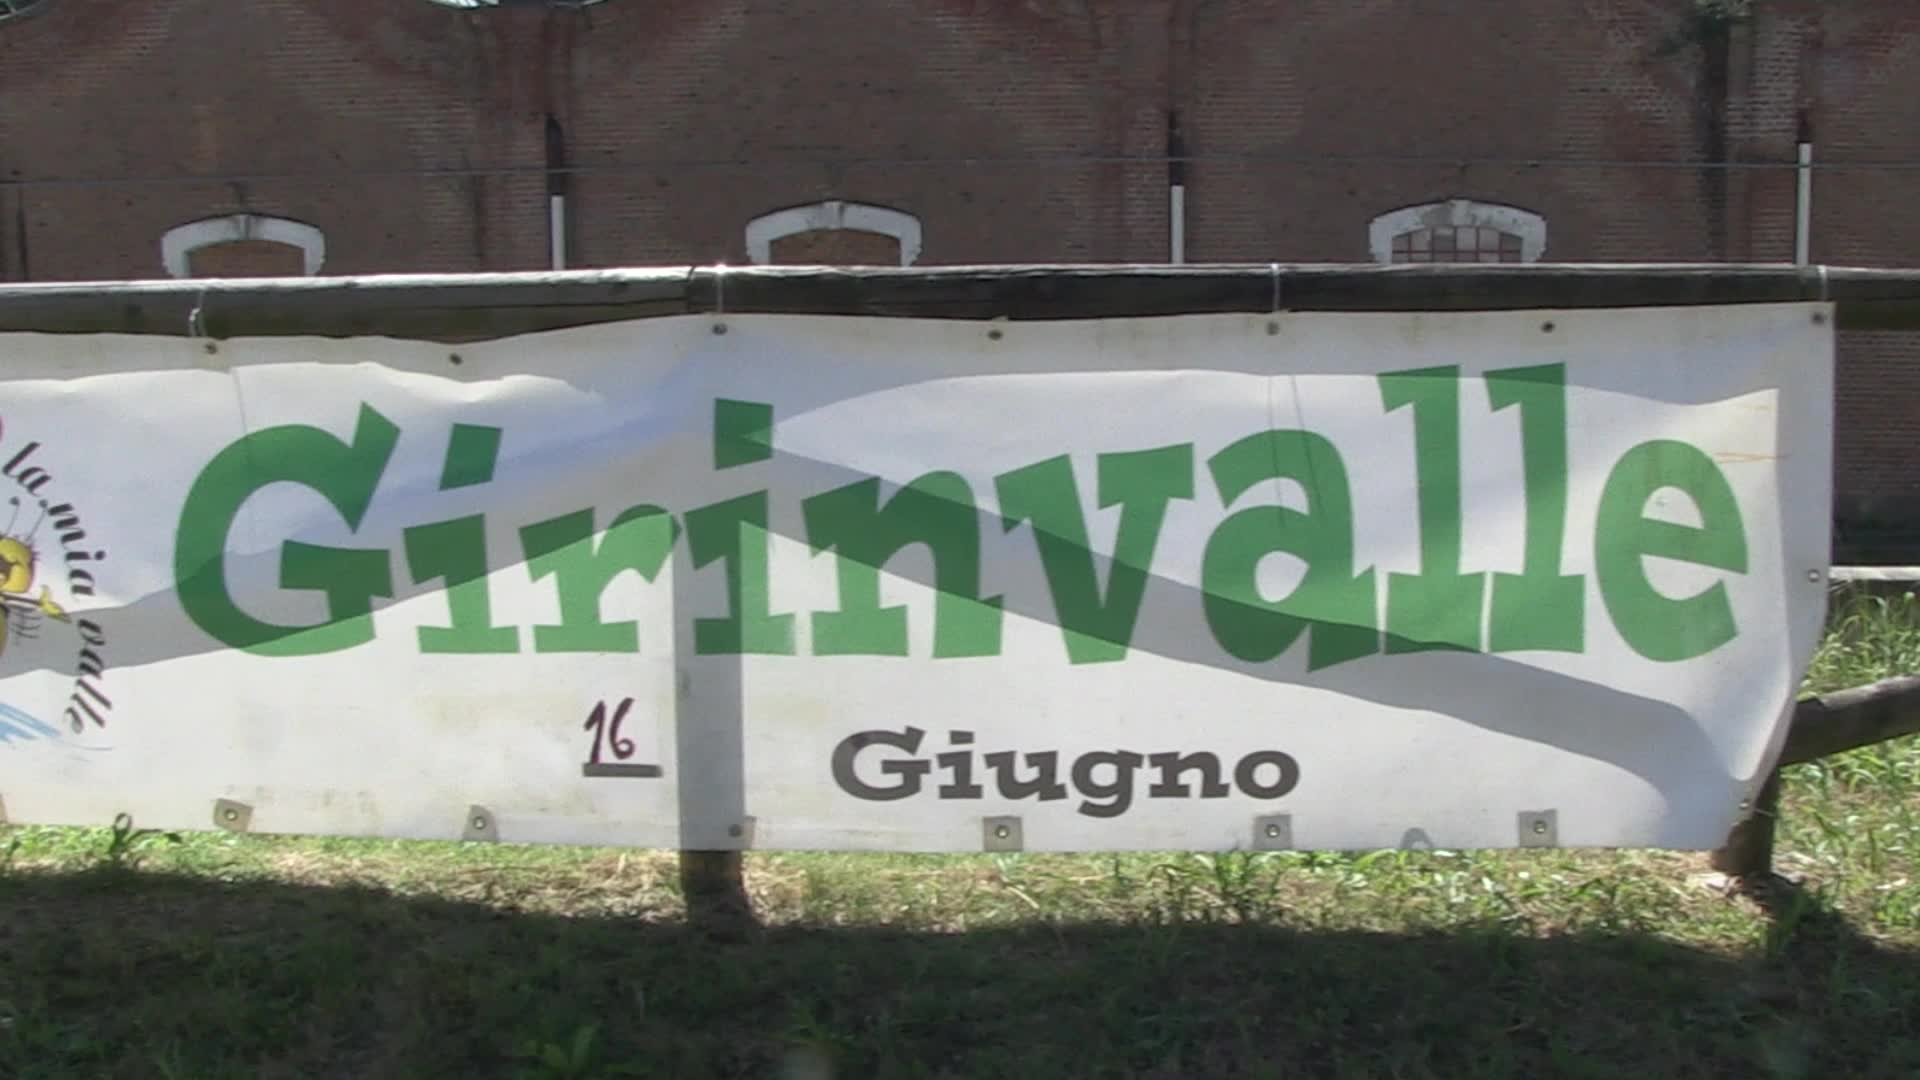 Video: La grande festa di Girinvalle